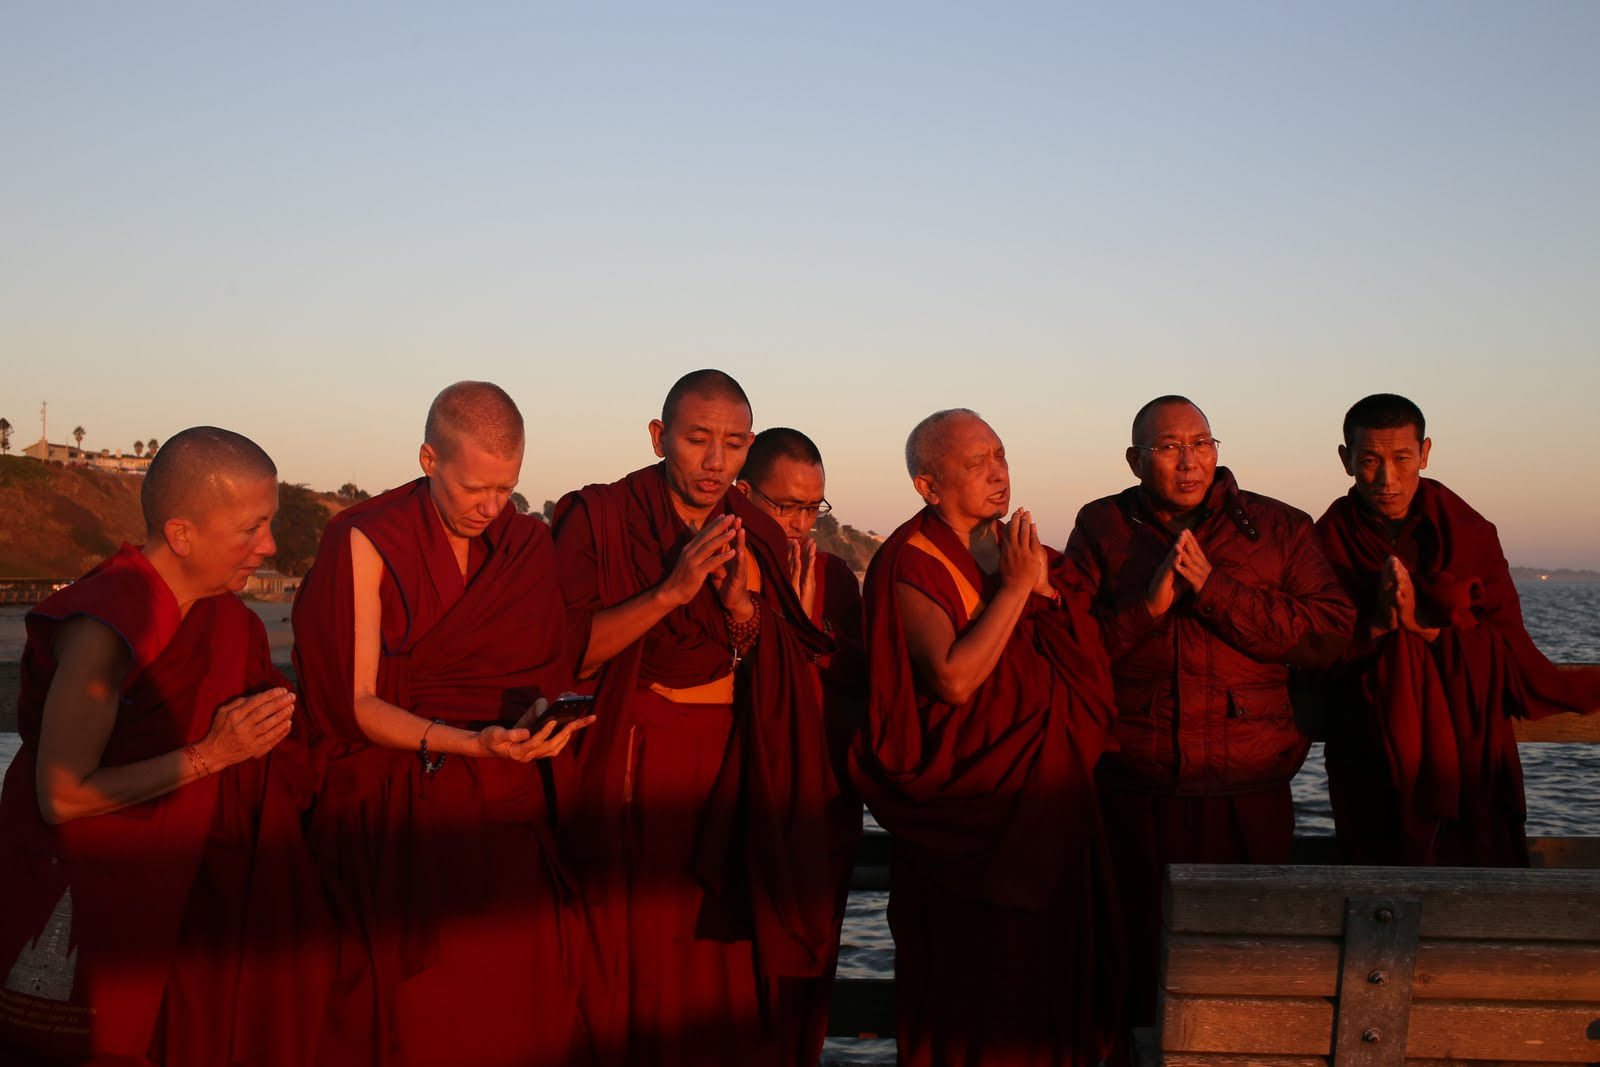 Rinpoche and Sangha blessing the ocean and all the beings living there. Photo by Ven. Thubten Kunsang.